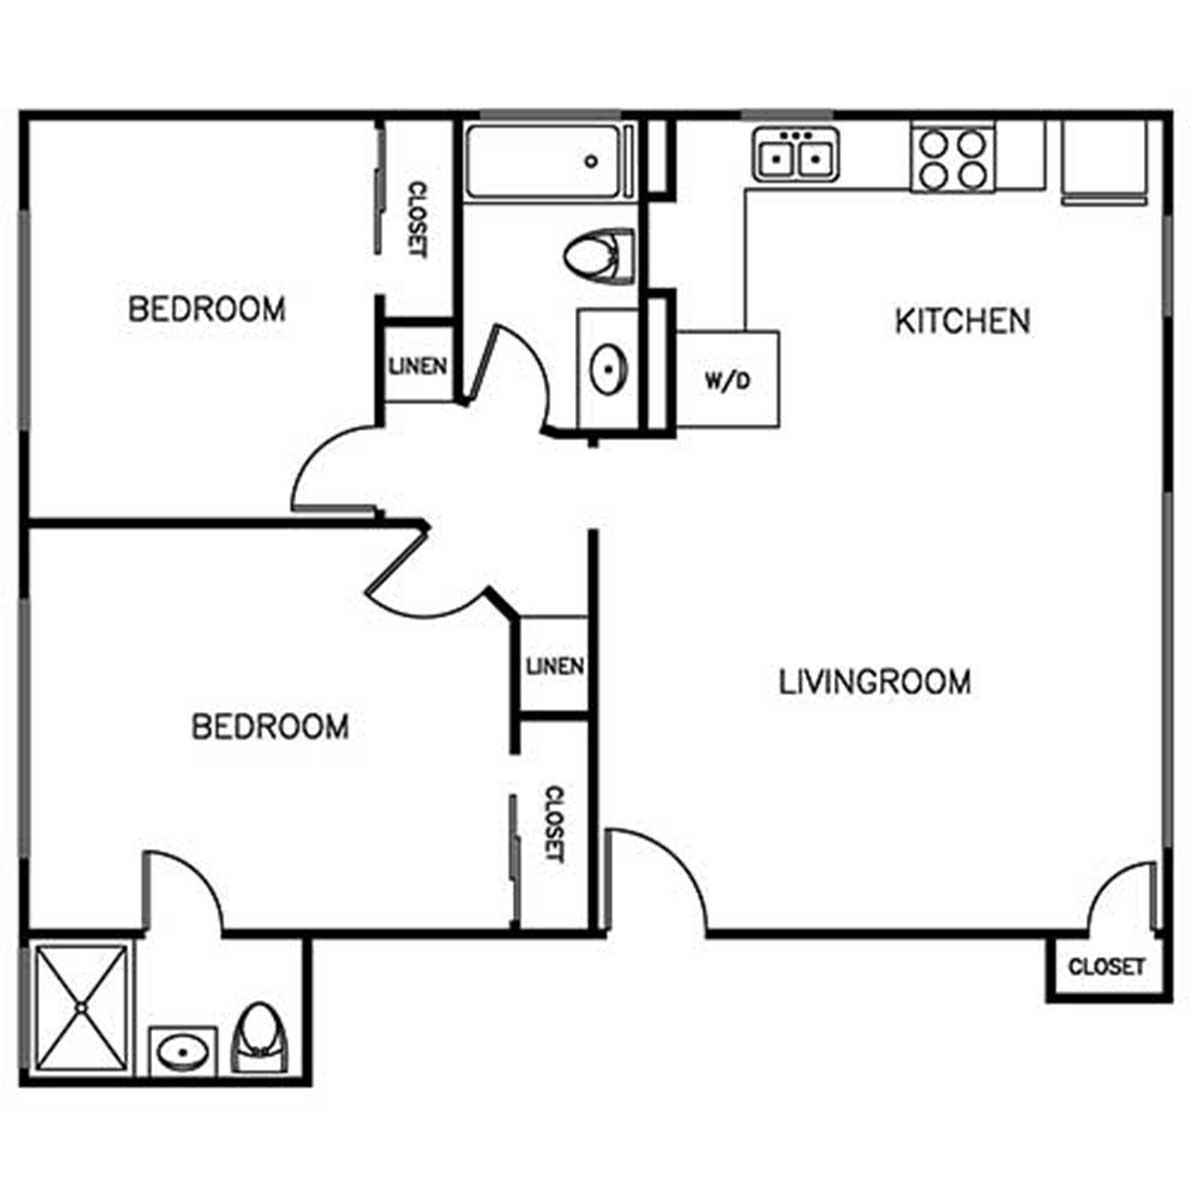 2 bedroom 2 bathroom townhome layout